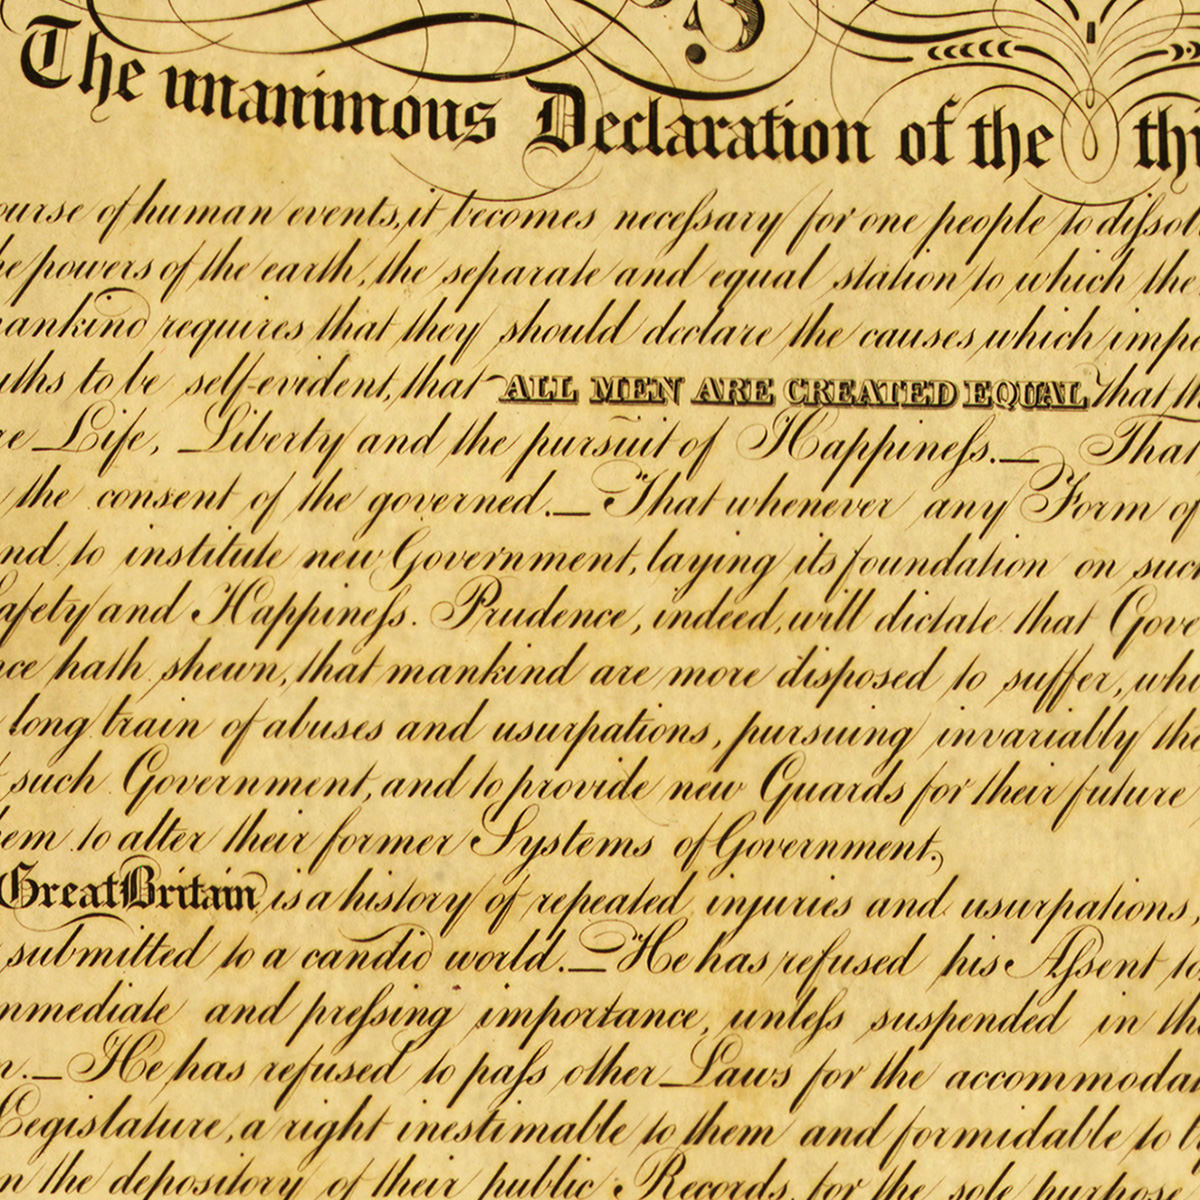 framed premium edition of the declaration of independence